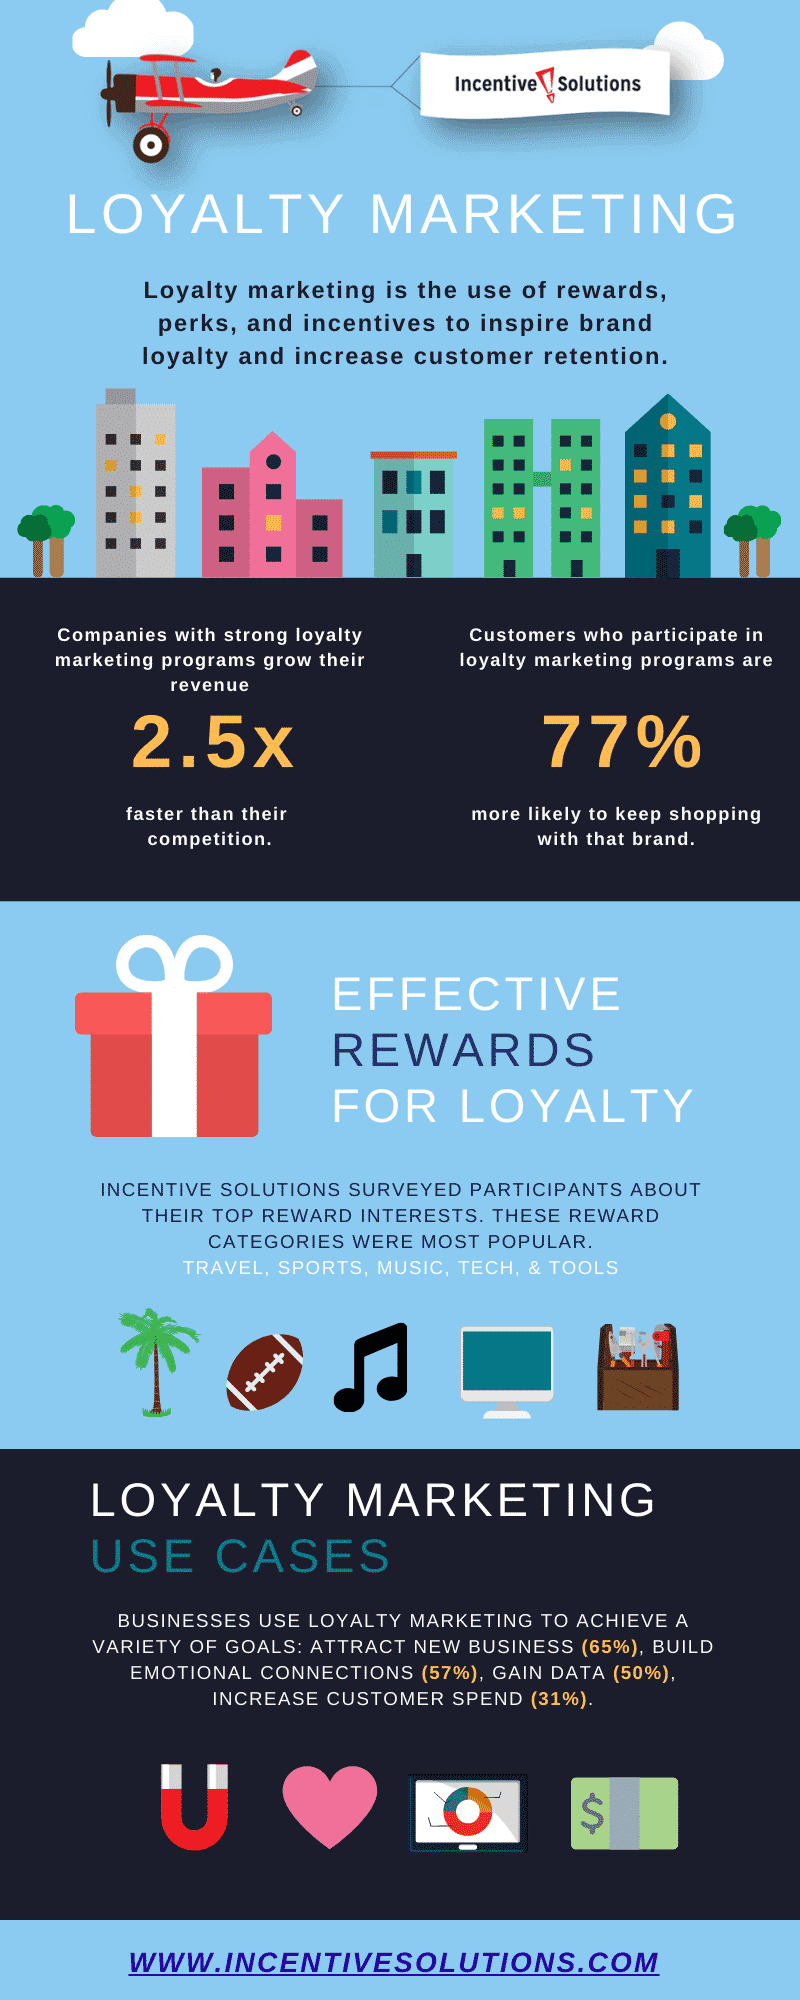 Learn more about loyalty marketing in this cool infographic!